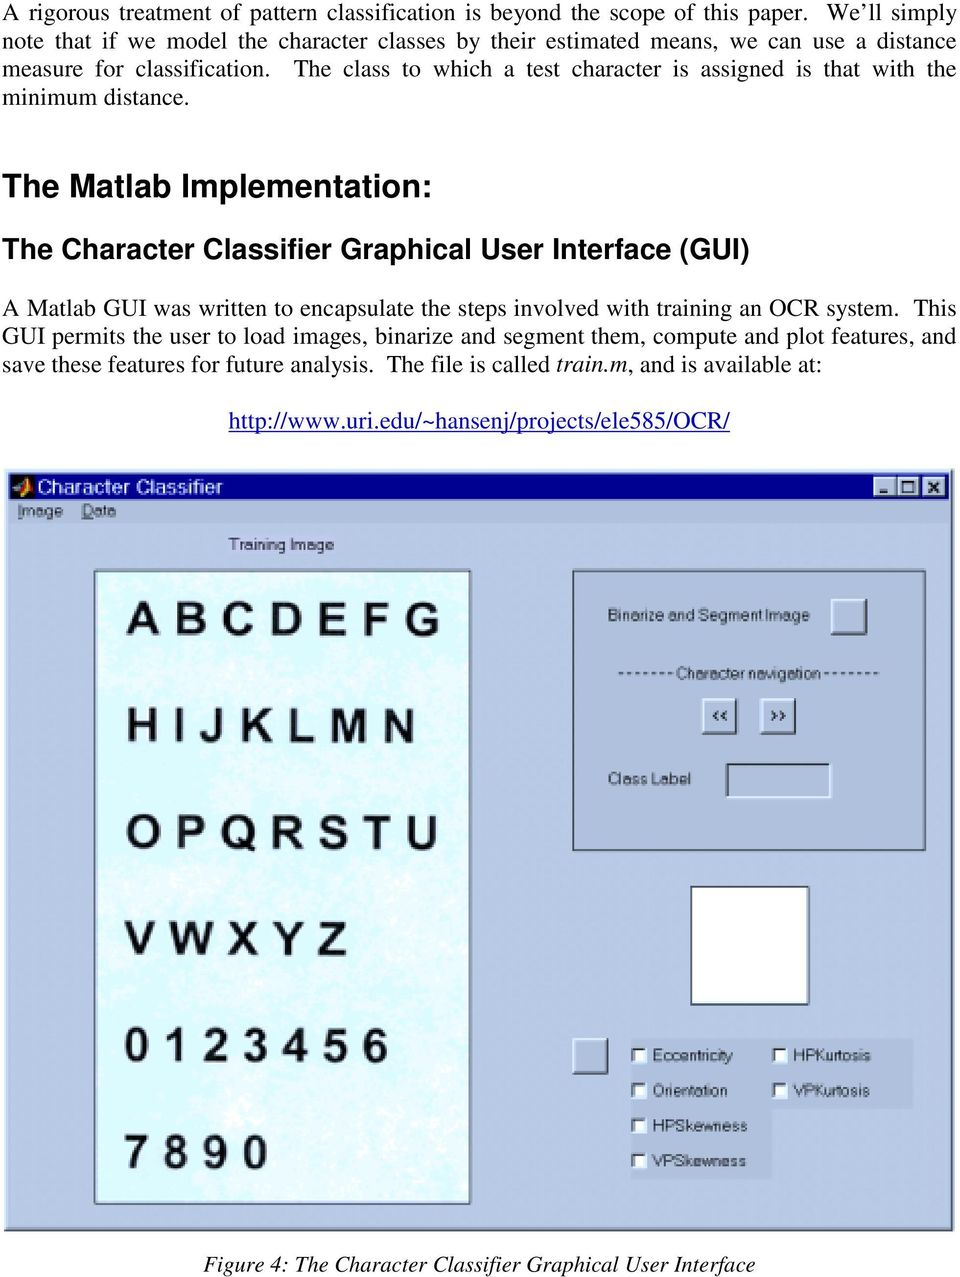 A Matlab Project in Optical Character Recognition (OCR) - PDF